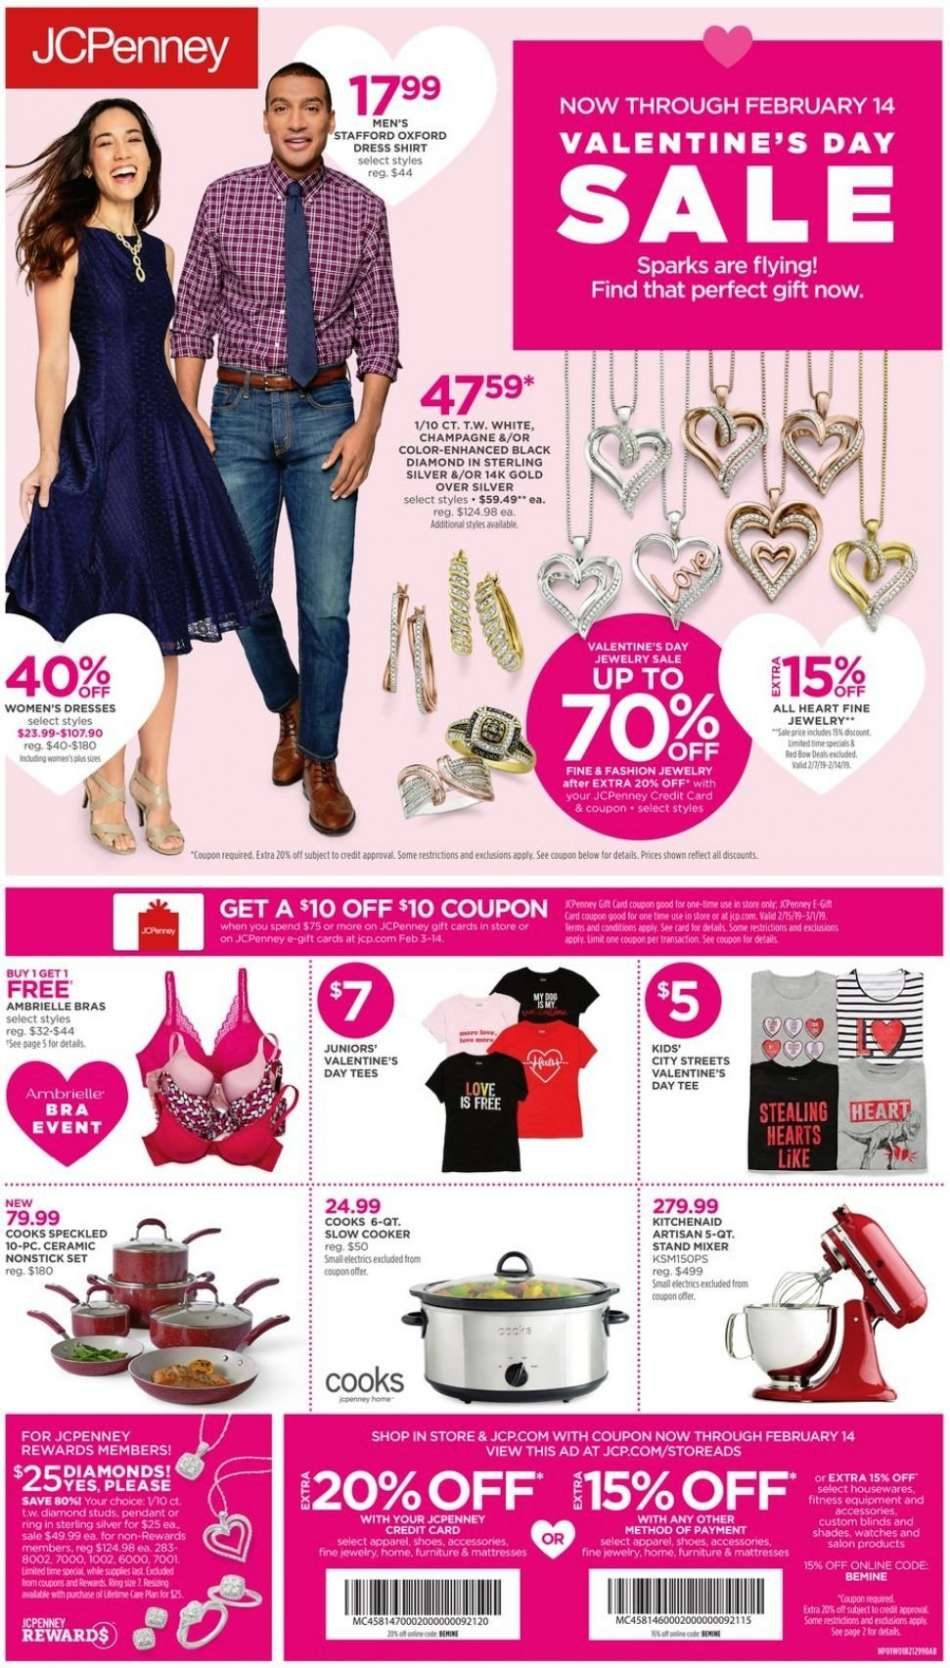 3b01a2cb321f9 JCPenney Flyer - 02.03.2019 - 02.14.2019 - Sales products - bra